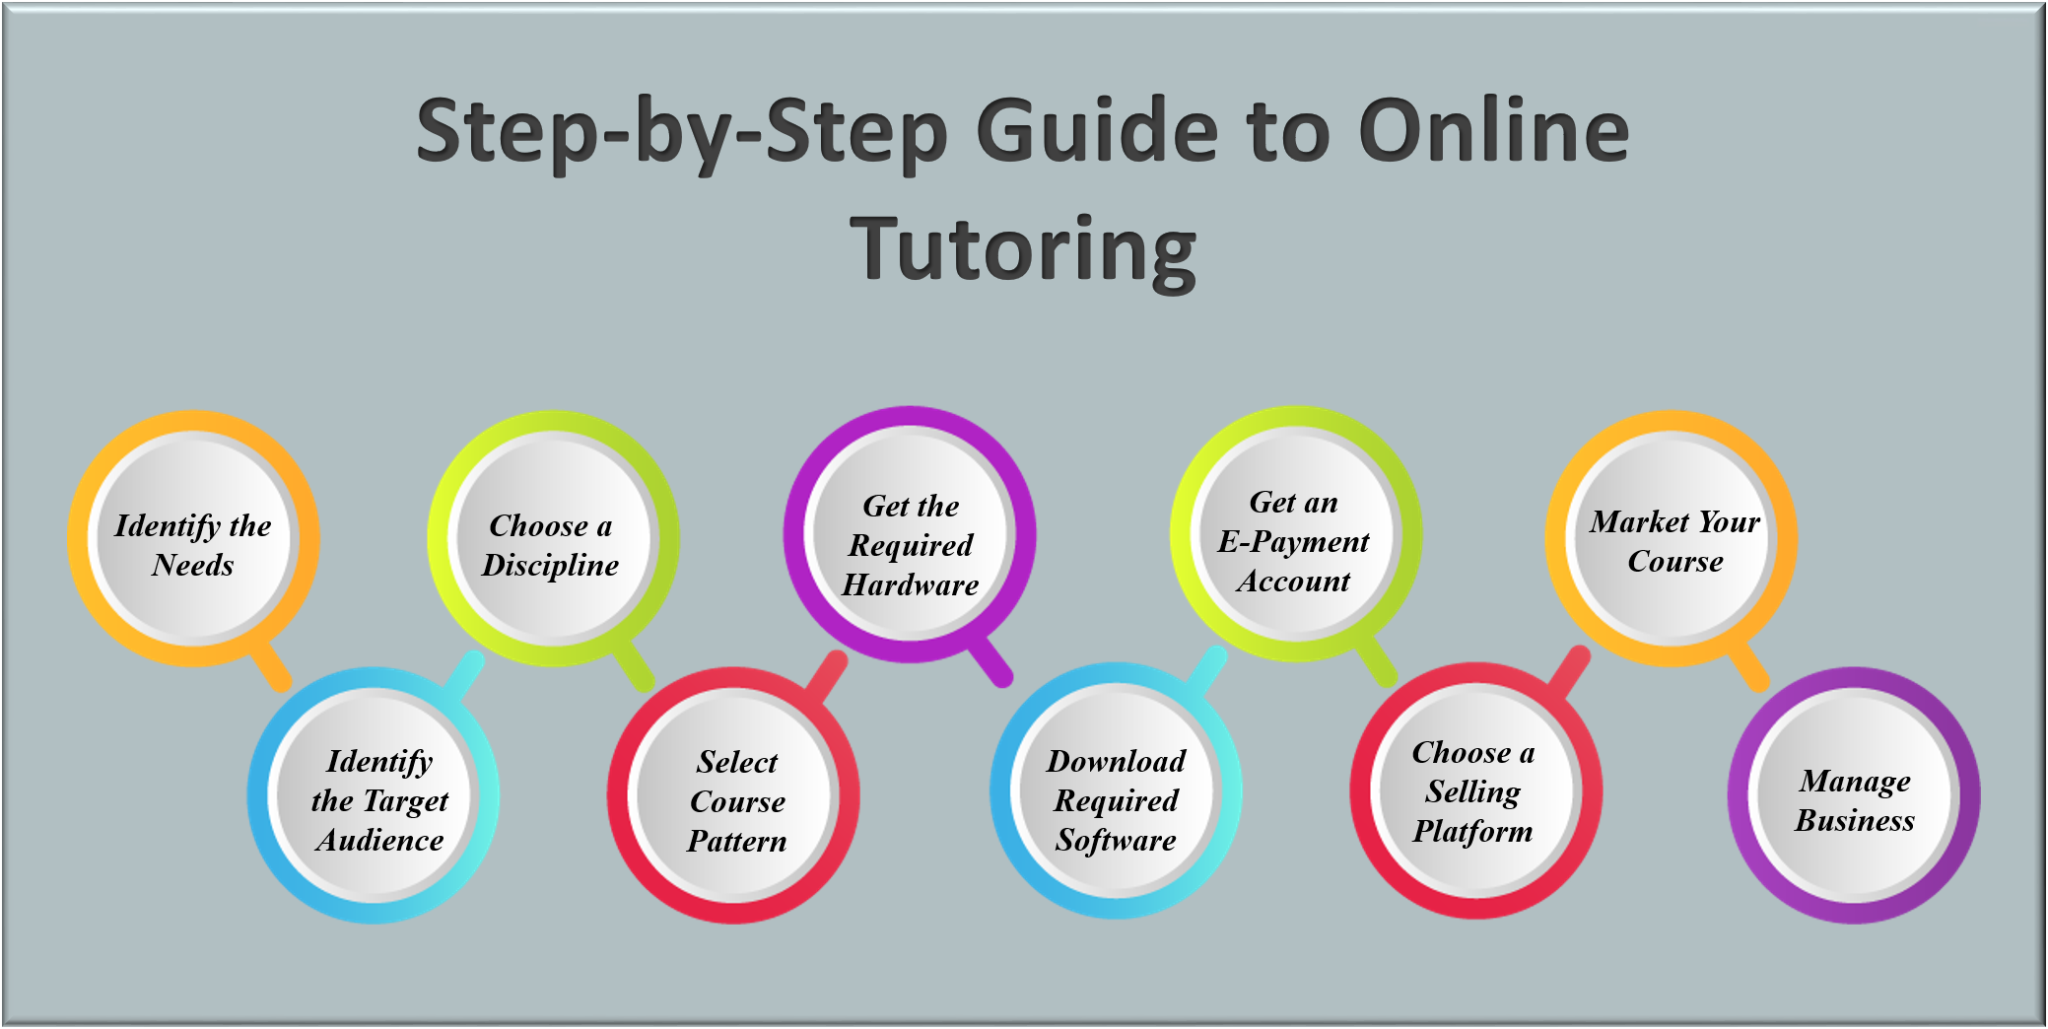 Step-by-Step Guide to Online Tutoring